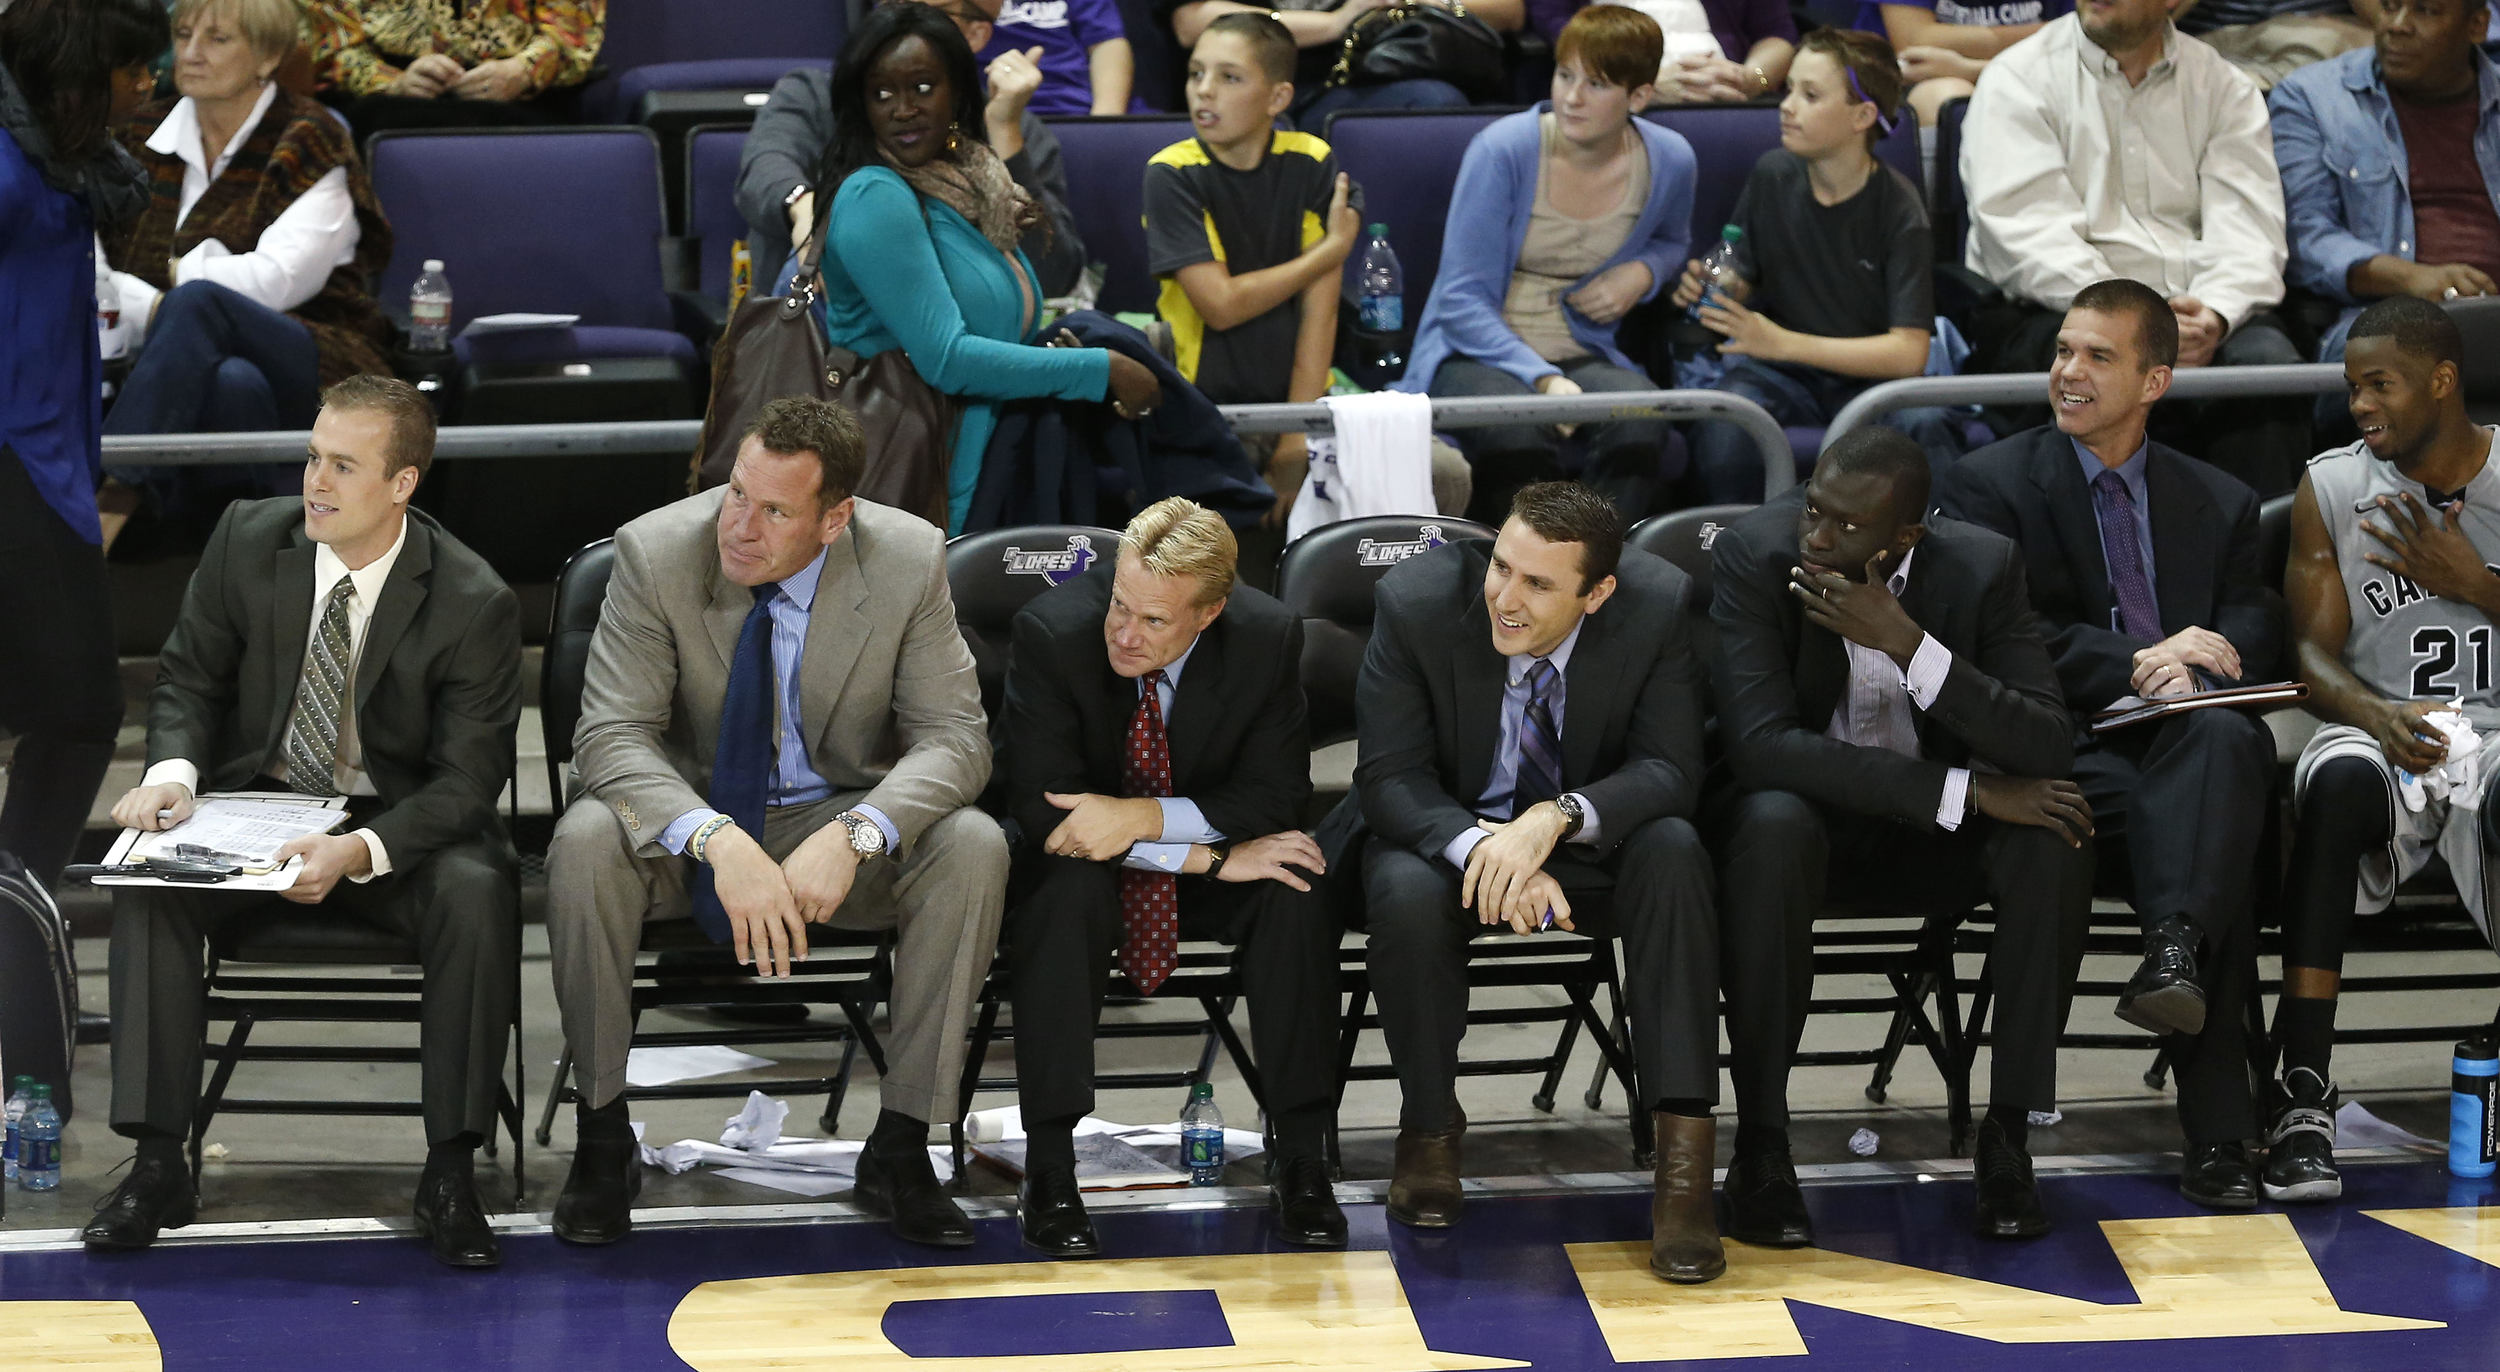 Dethie Fall, Assistant Coach, and his fellow Grand Canyon coaches lead their team to the CollegeInsider.com Second Round